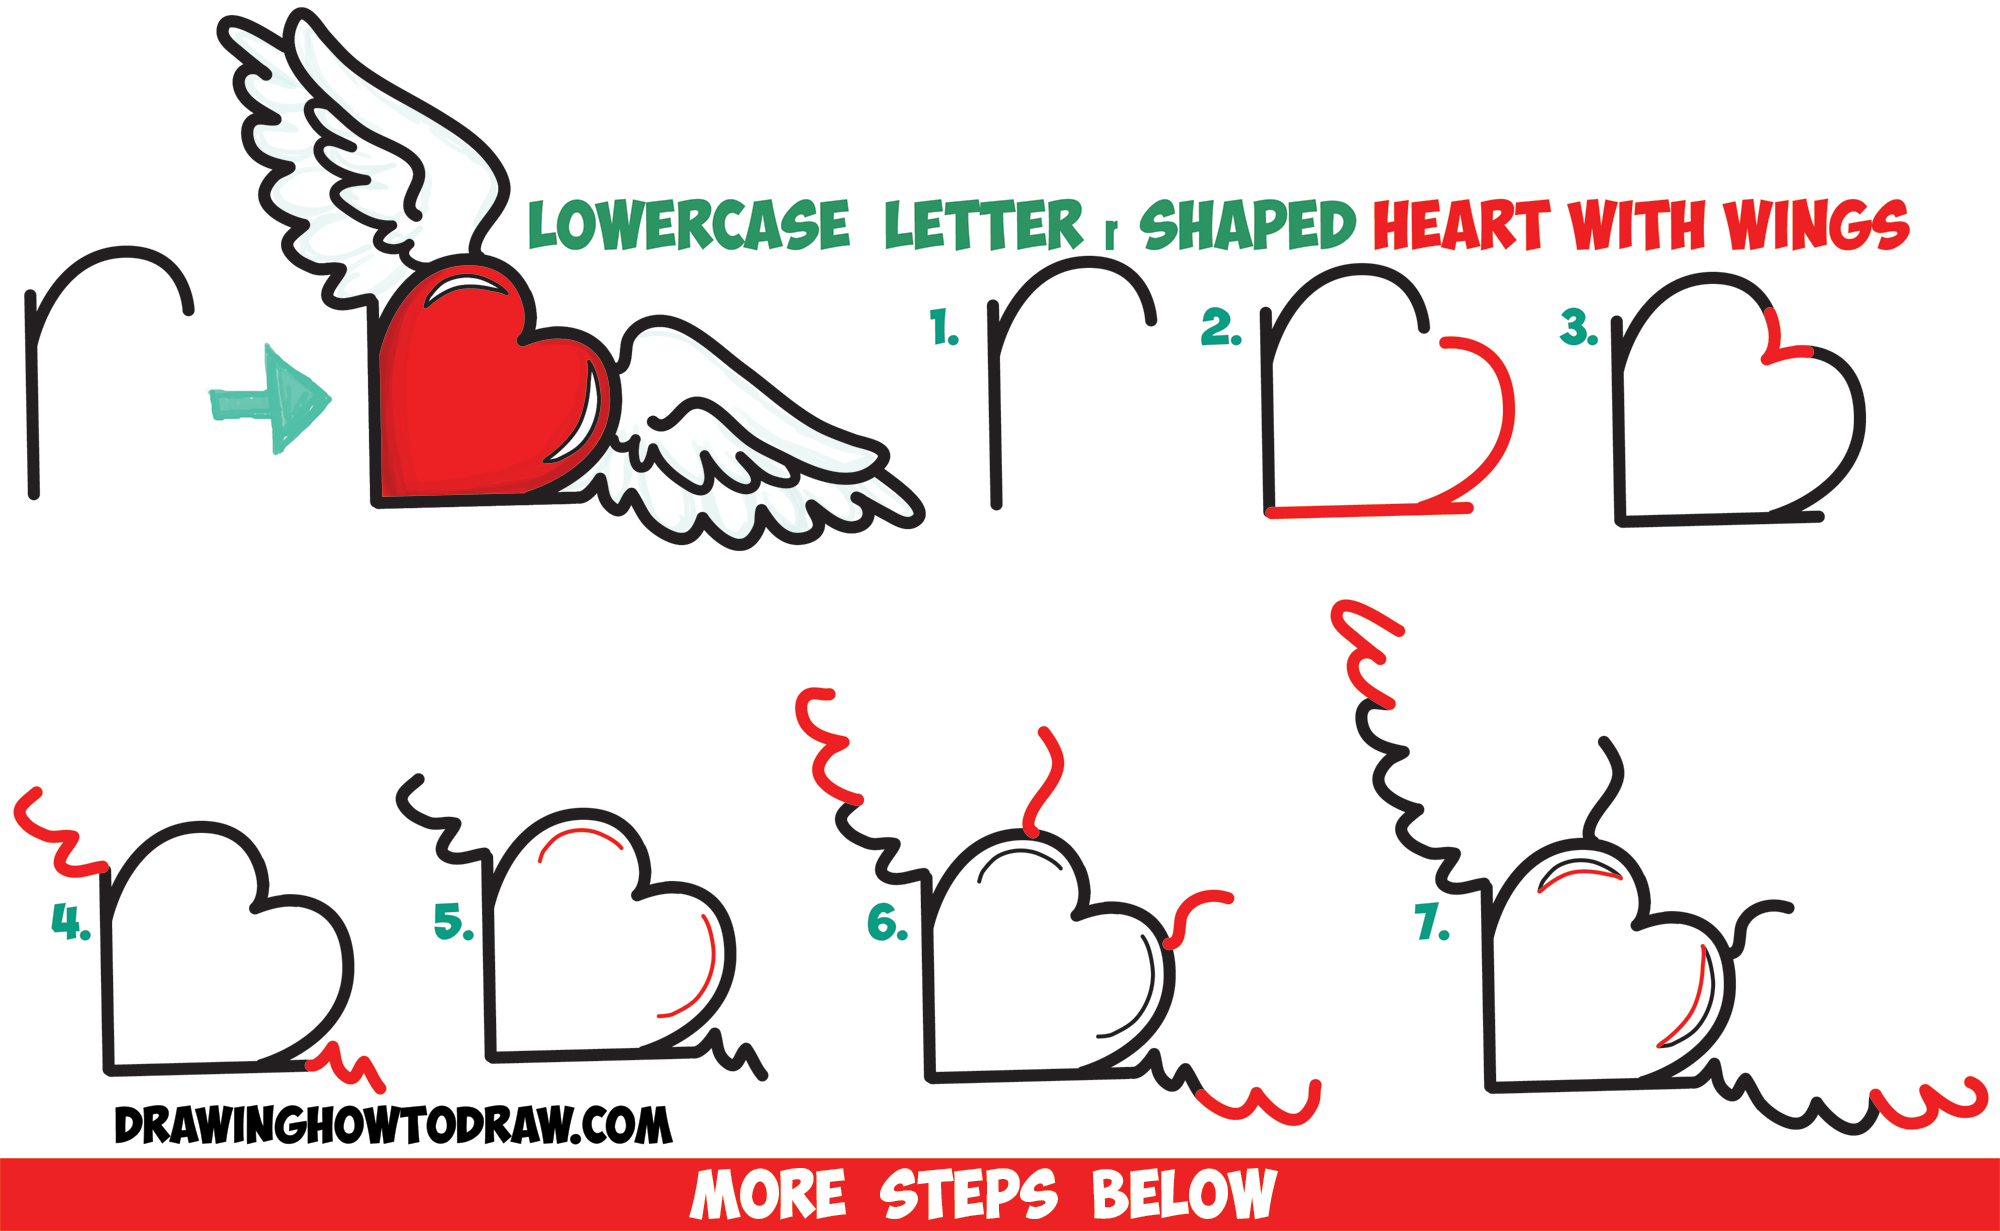 How To Draw Heart With Wings From Lowercase Letter R